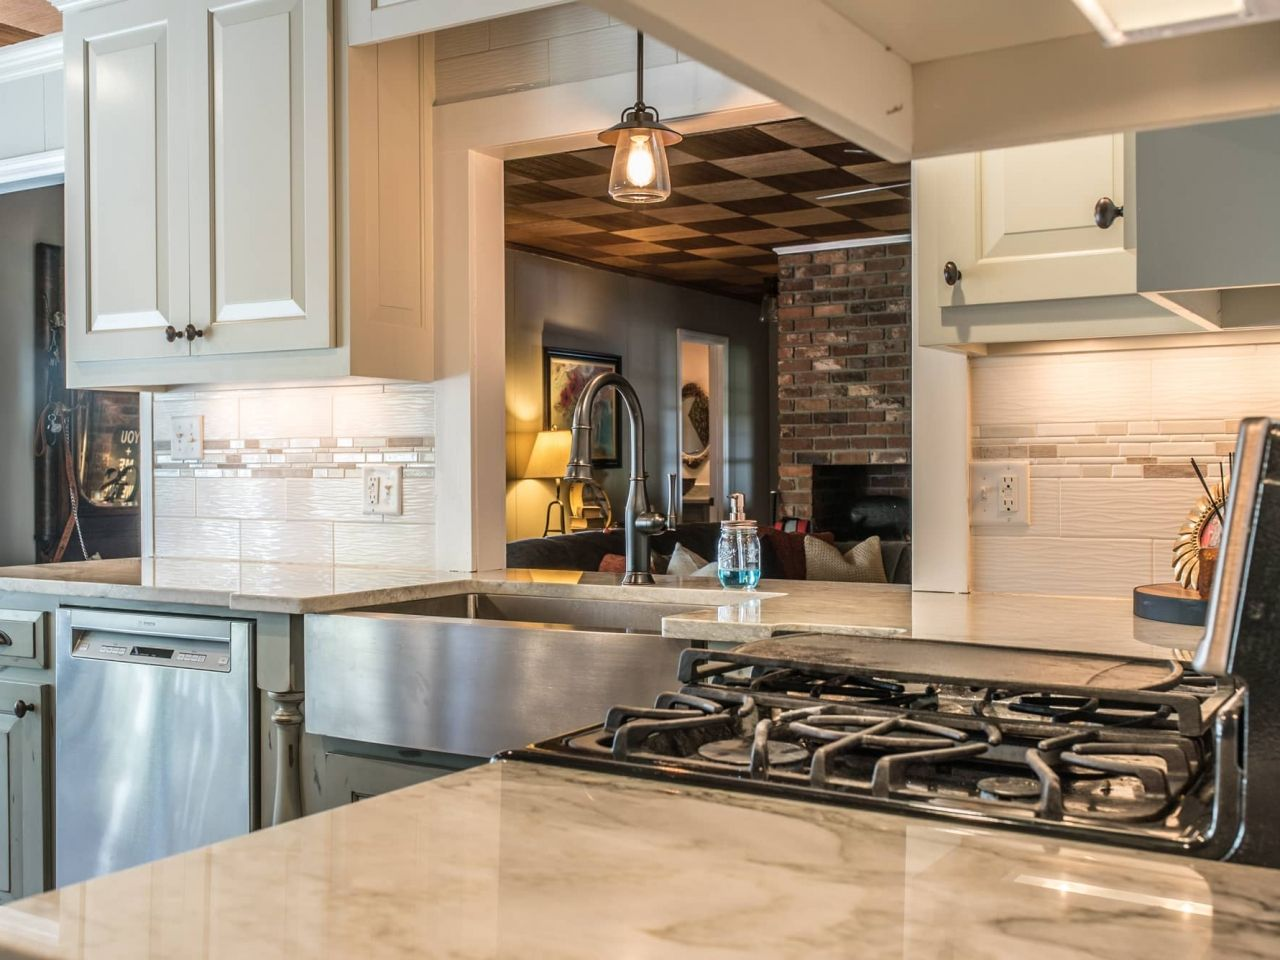 Project By East Coast Granite Marble In Columbia Sc This Stone Is A Sea Pearl Quartzite Kitchen Countertops Free Kitchen Design Kitchen Tools Design